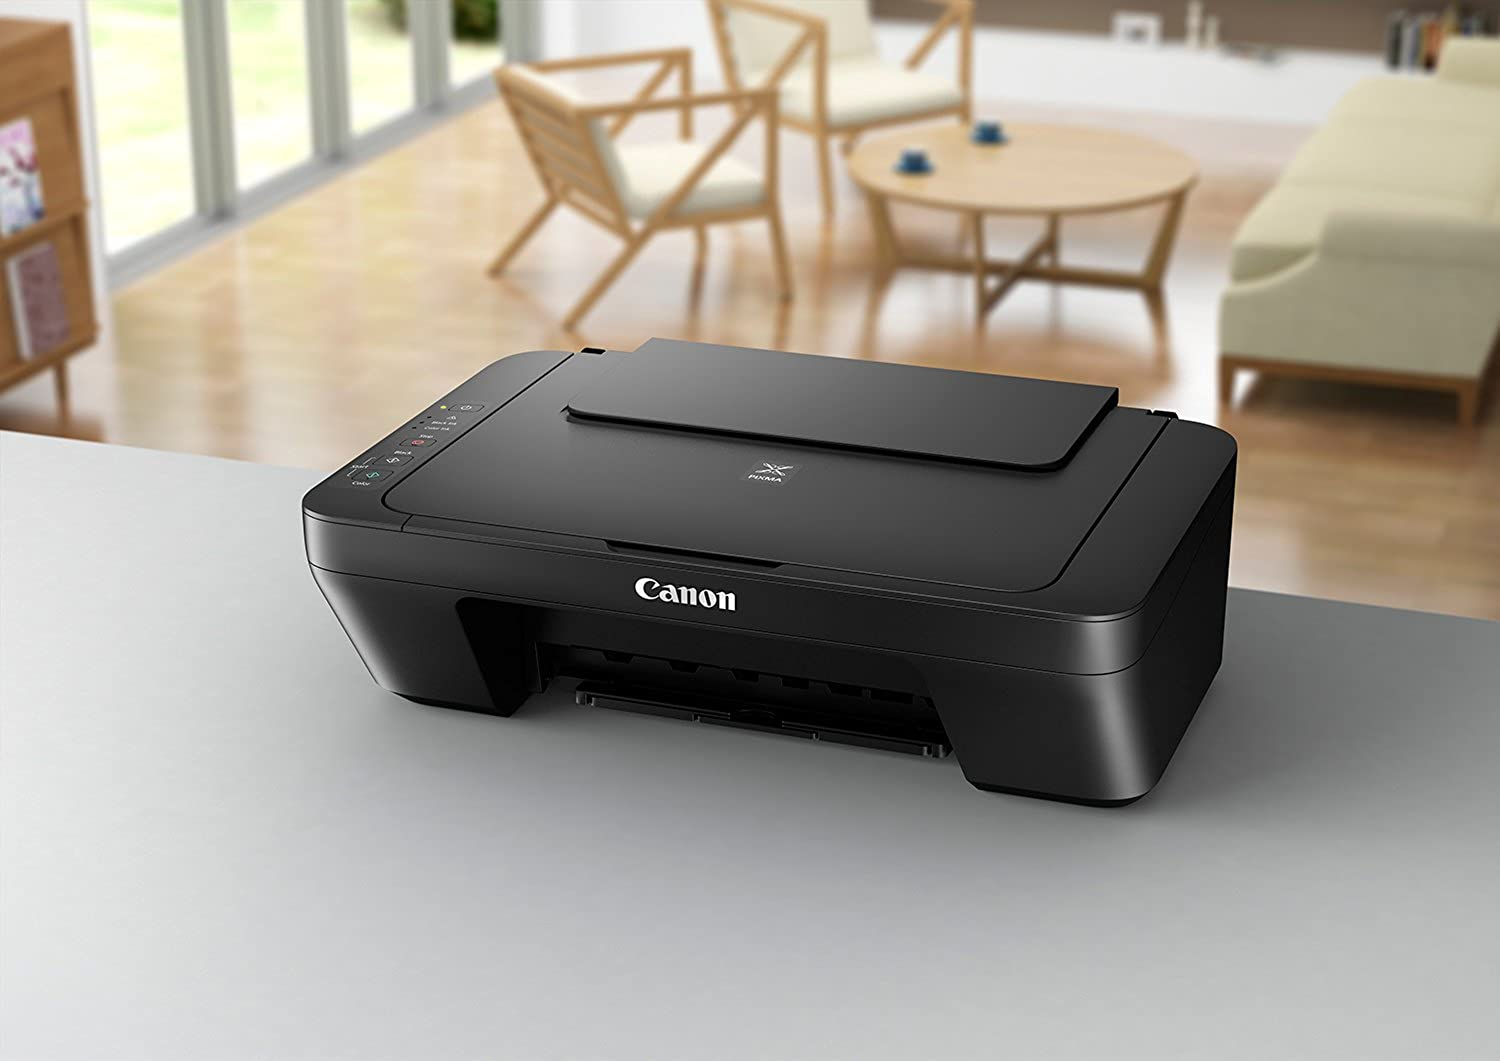 Amazon.com: Canon - Multifunction Printer Canon Pixma ...